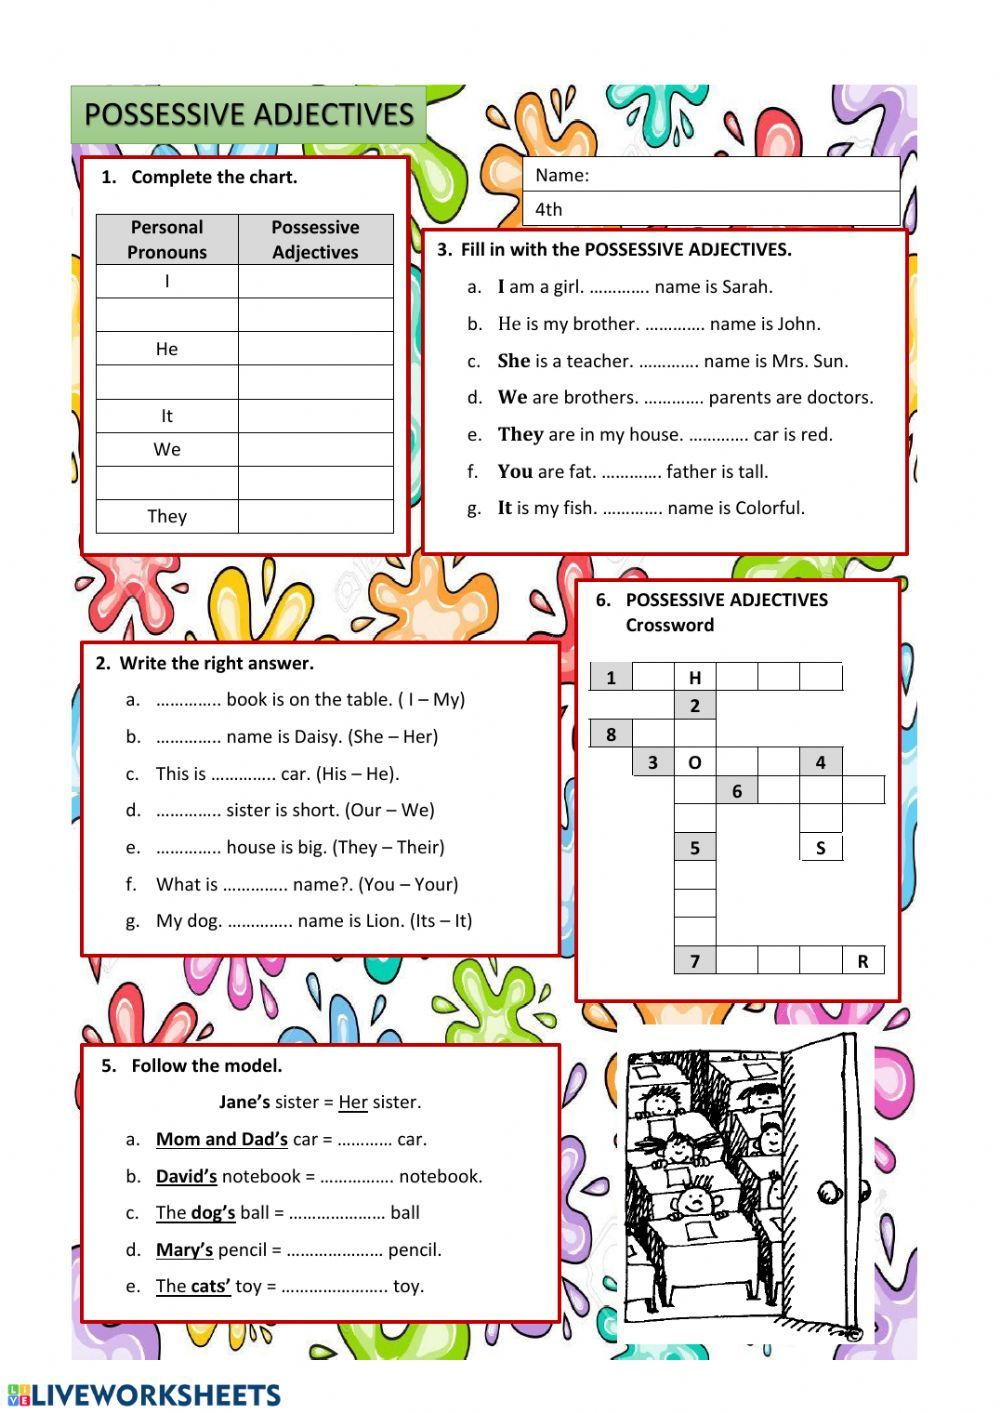 small resolution of https://dubaikhalifas.com/vocabulary-has-got-possessive-adjectives-english-esl-worksheets-for-distance-learning-and/